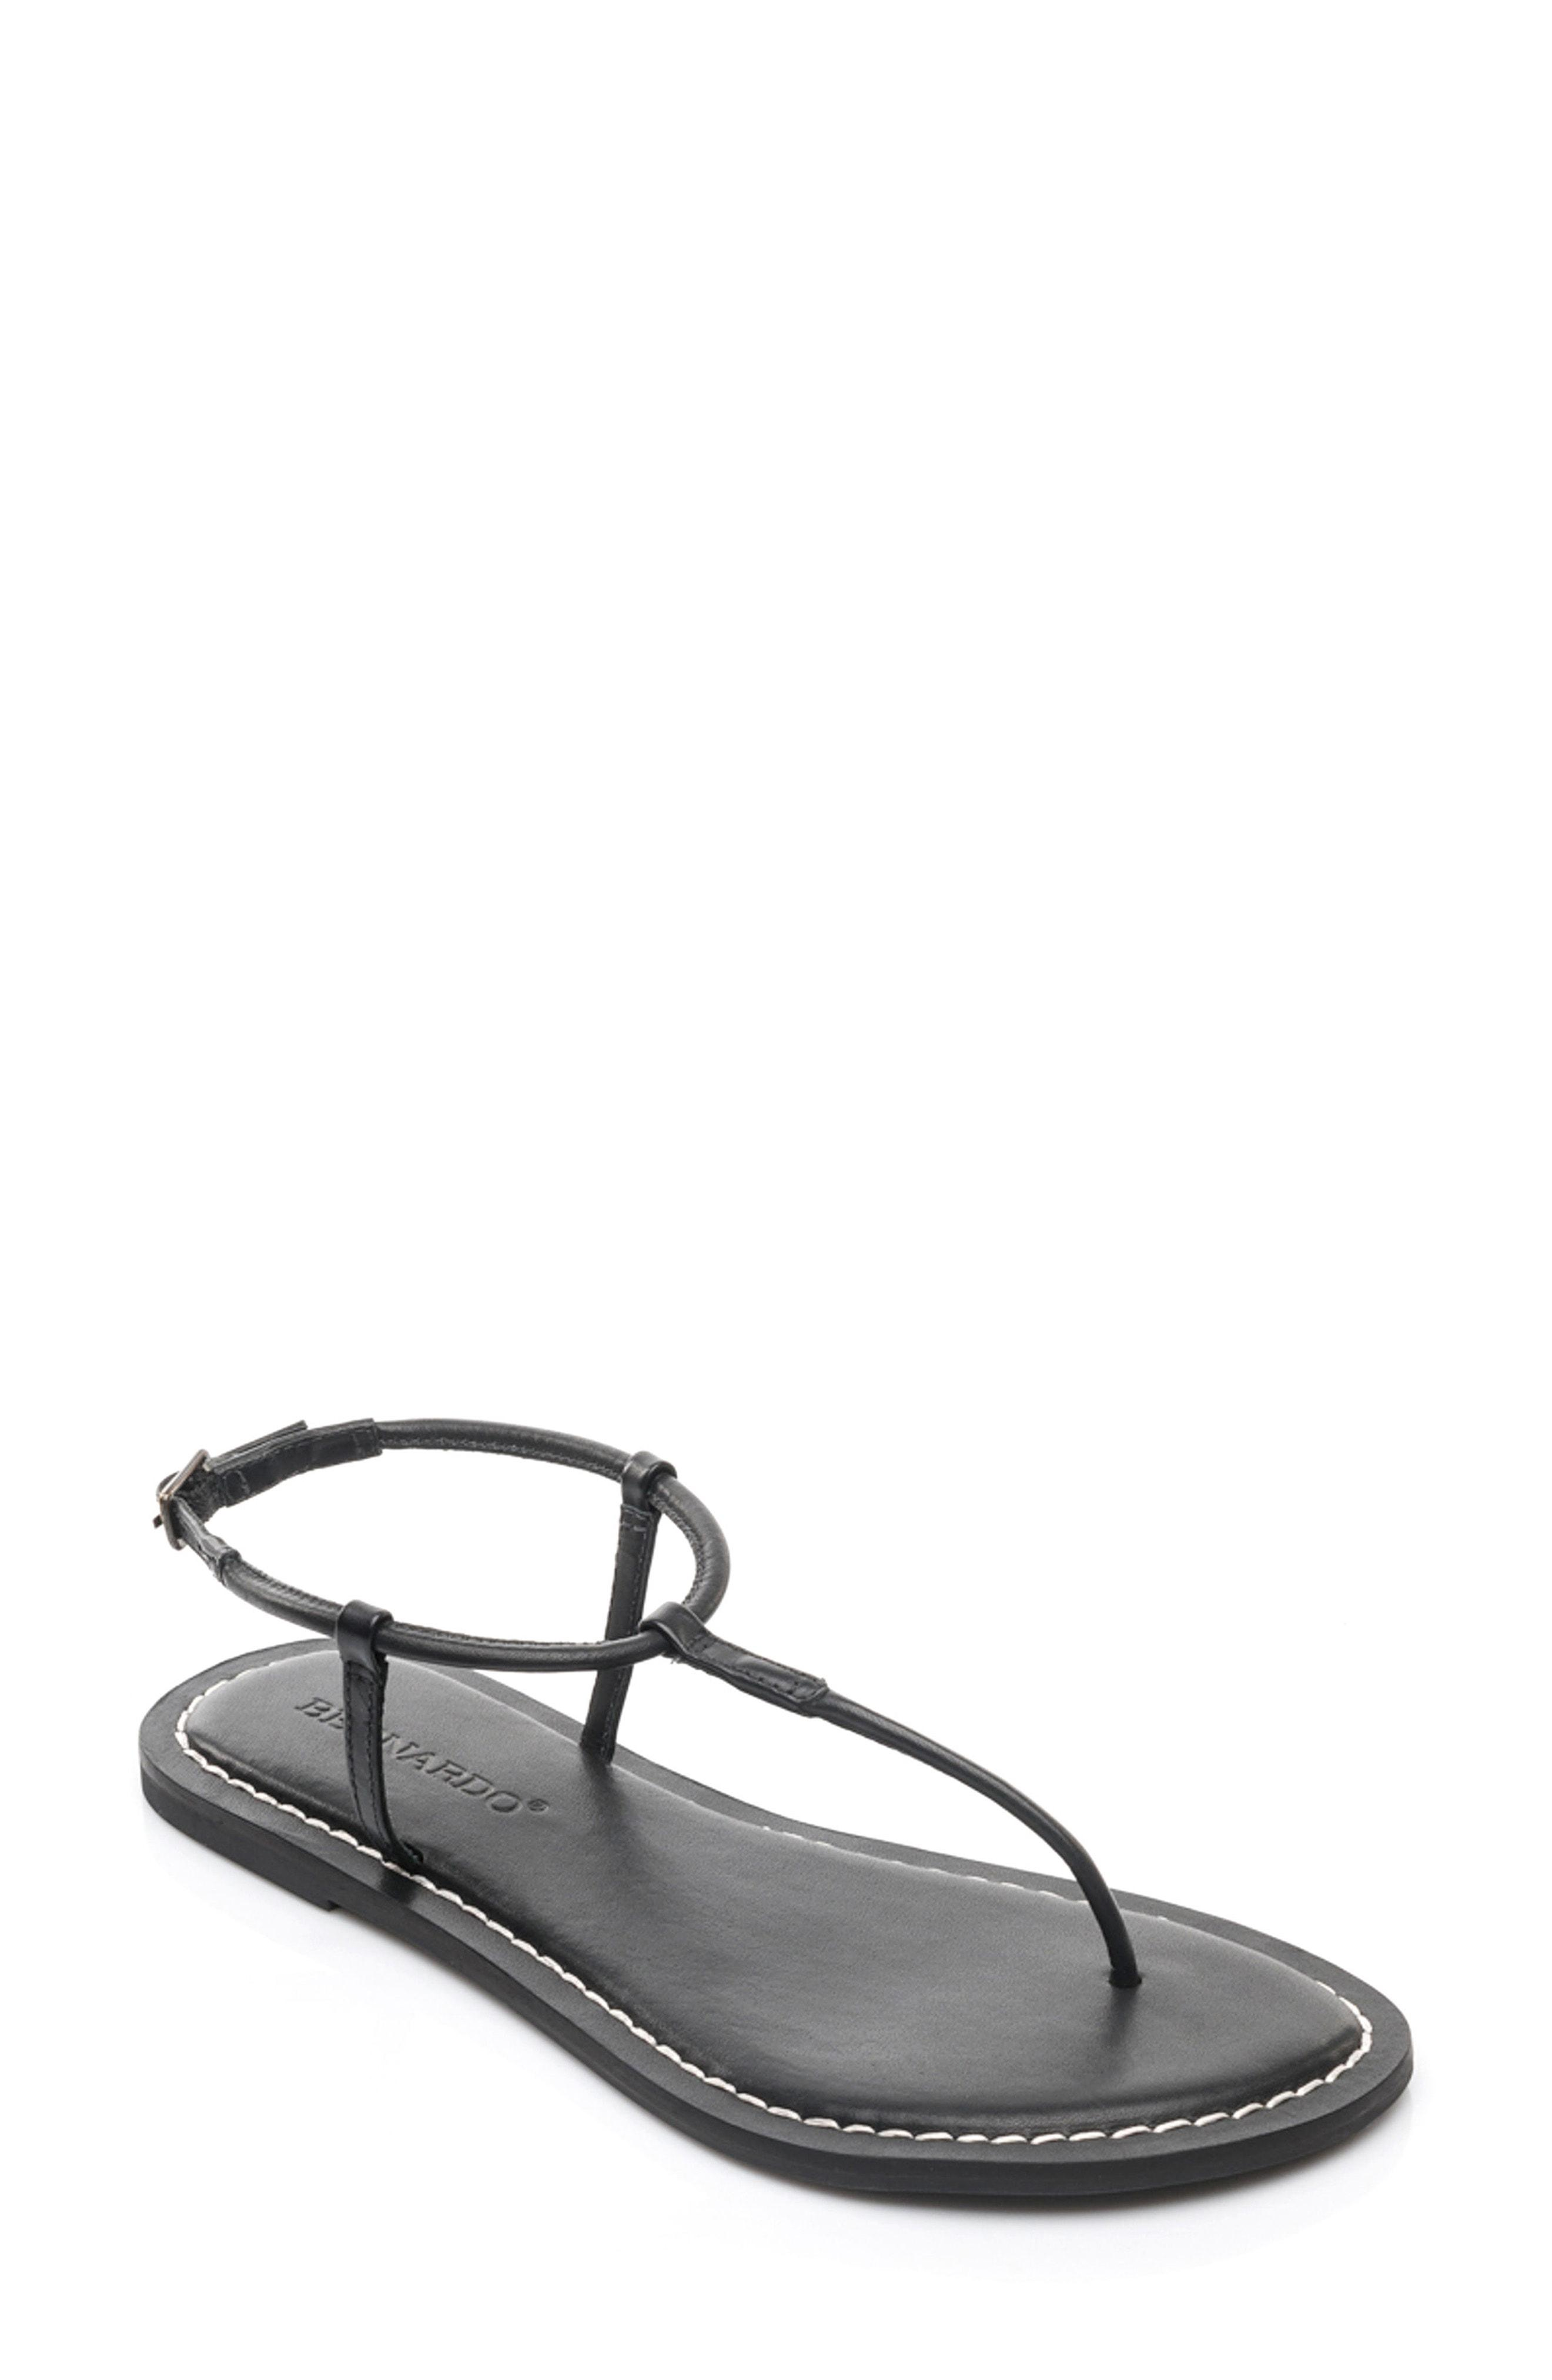 8fdf1734dfc Bernardo Lilly T-Strap Thong Sandals In Black Leather